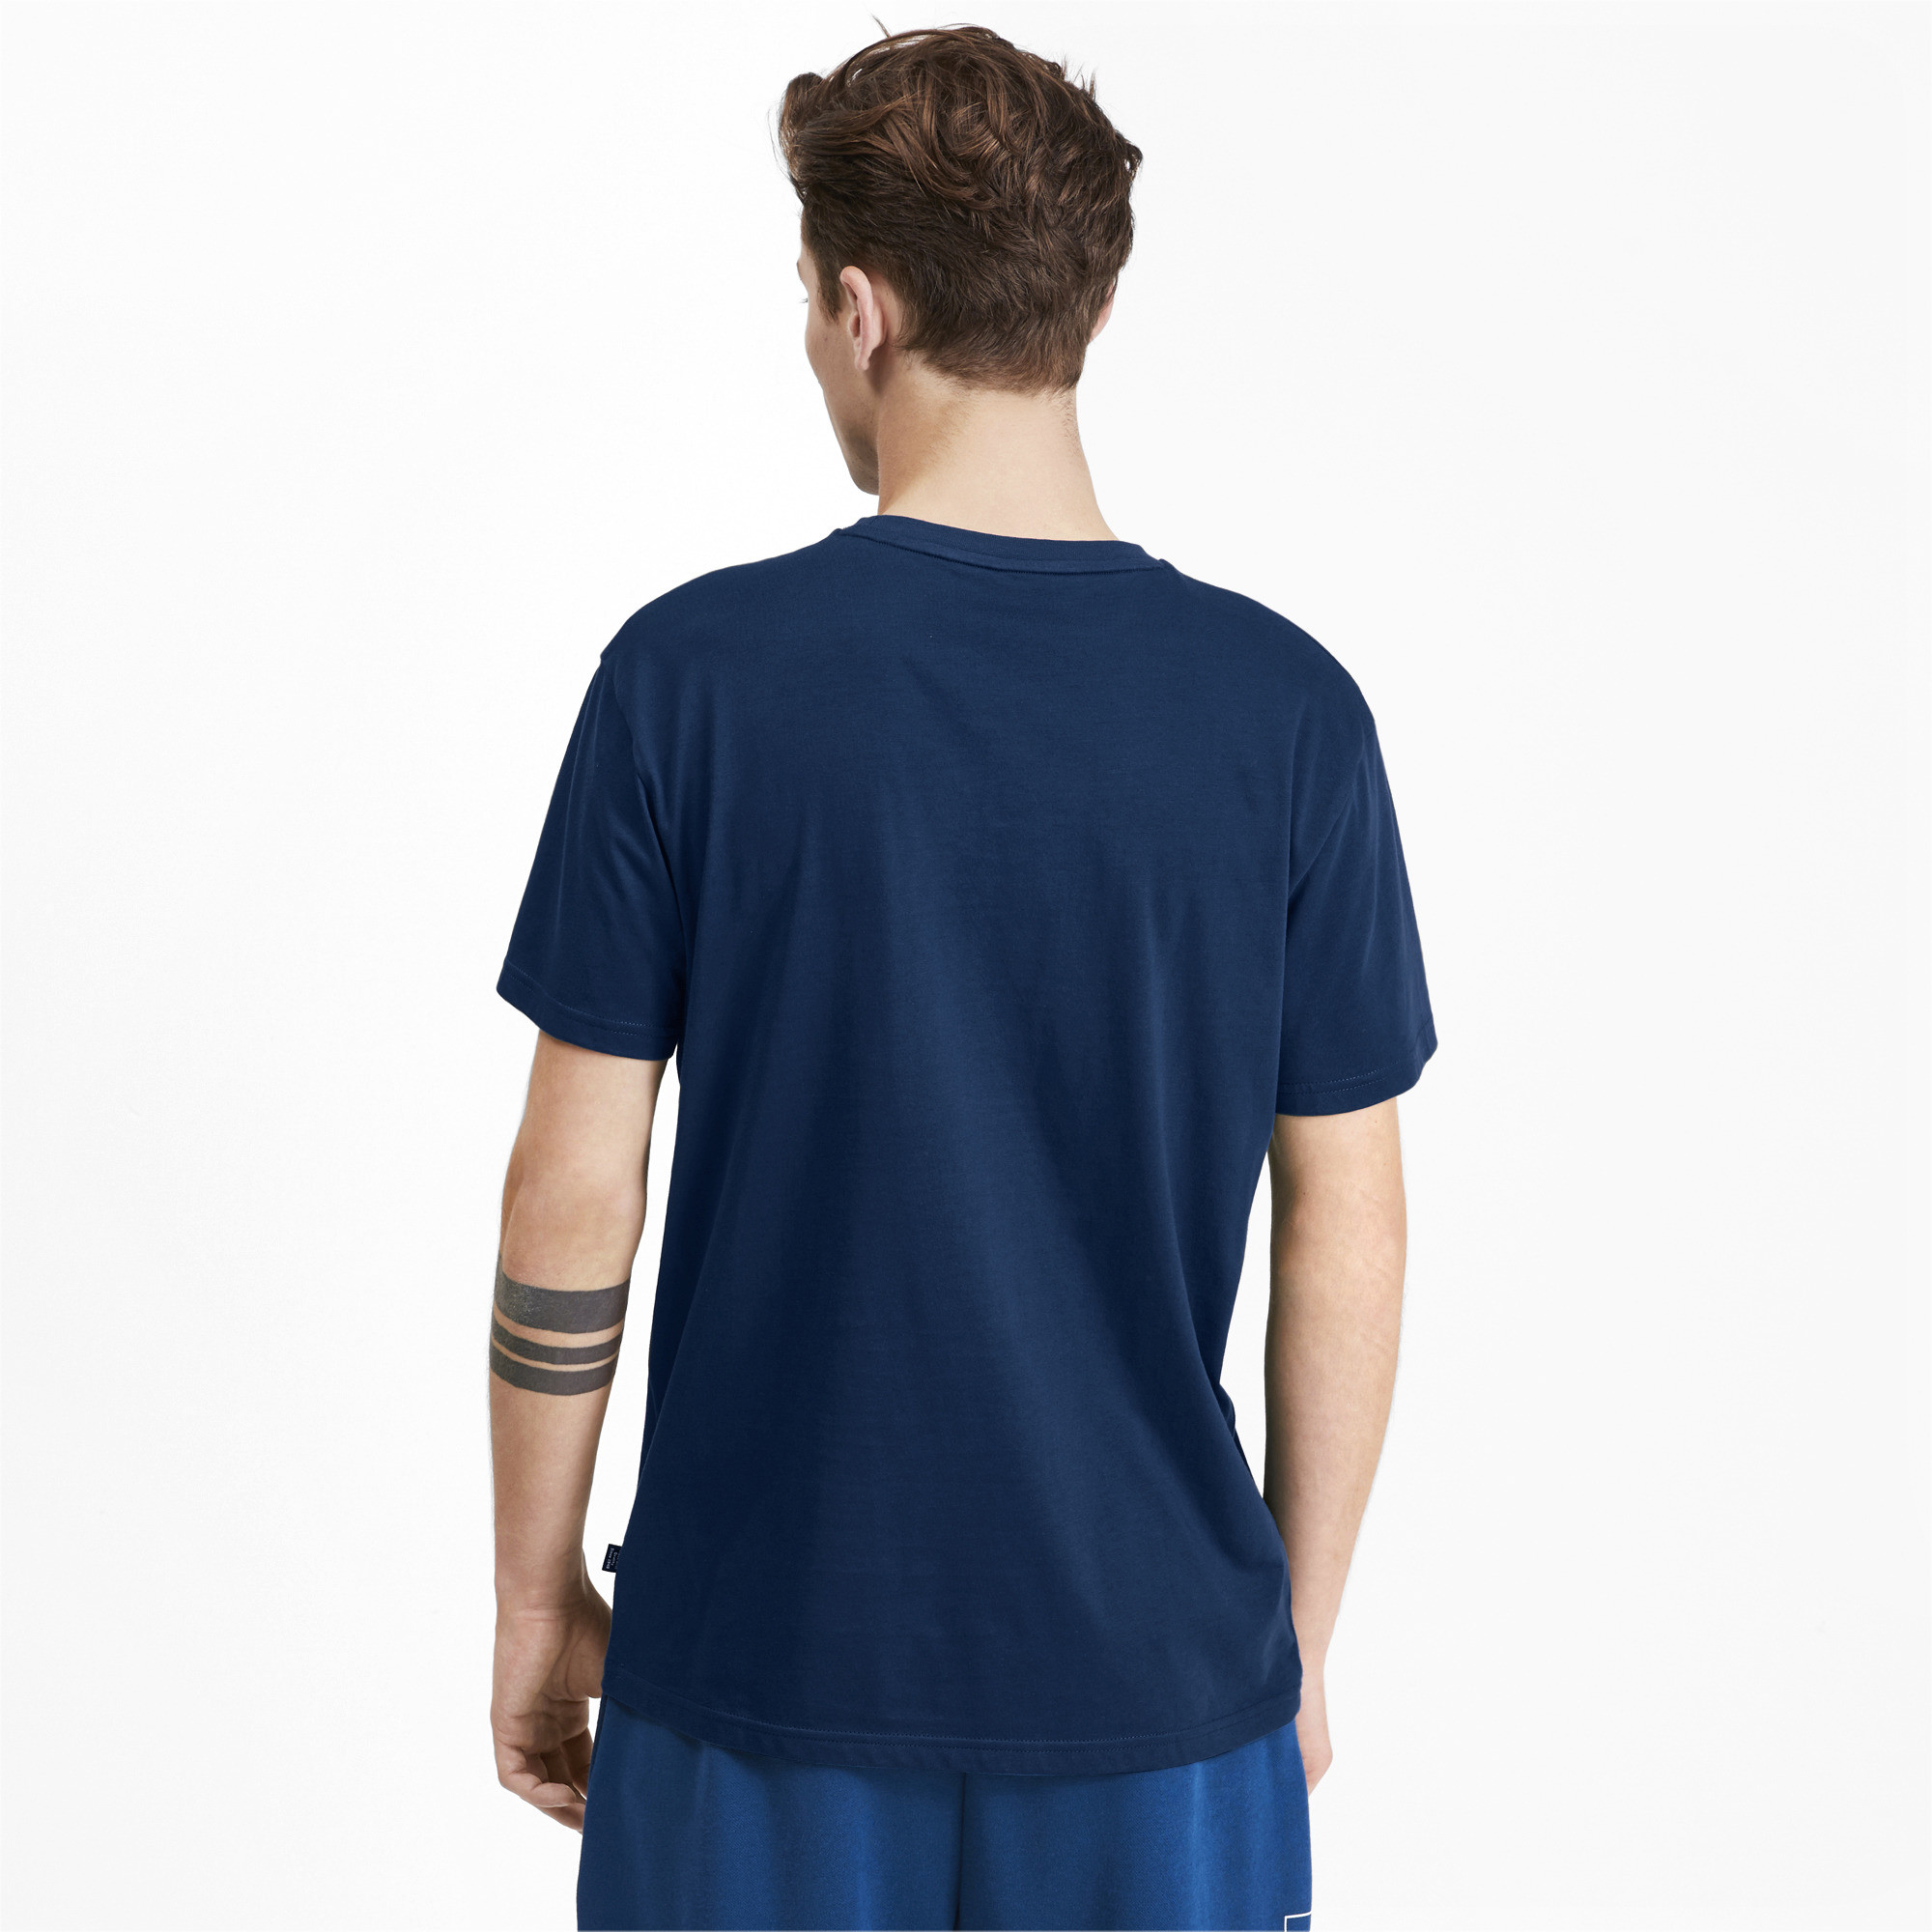 PUMA-Rebel-Bold-Men-039-s-Tee-Men-Tee-Basics thumbnail 22